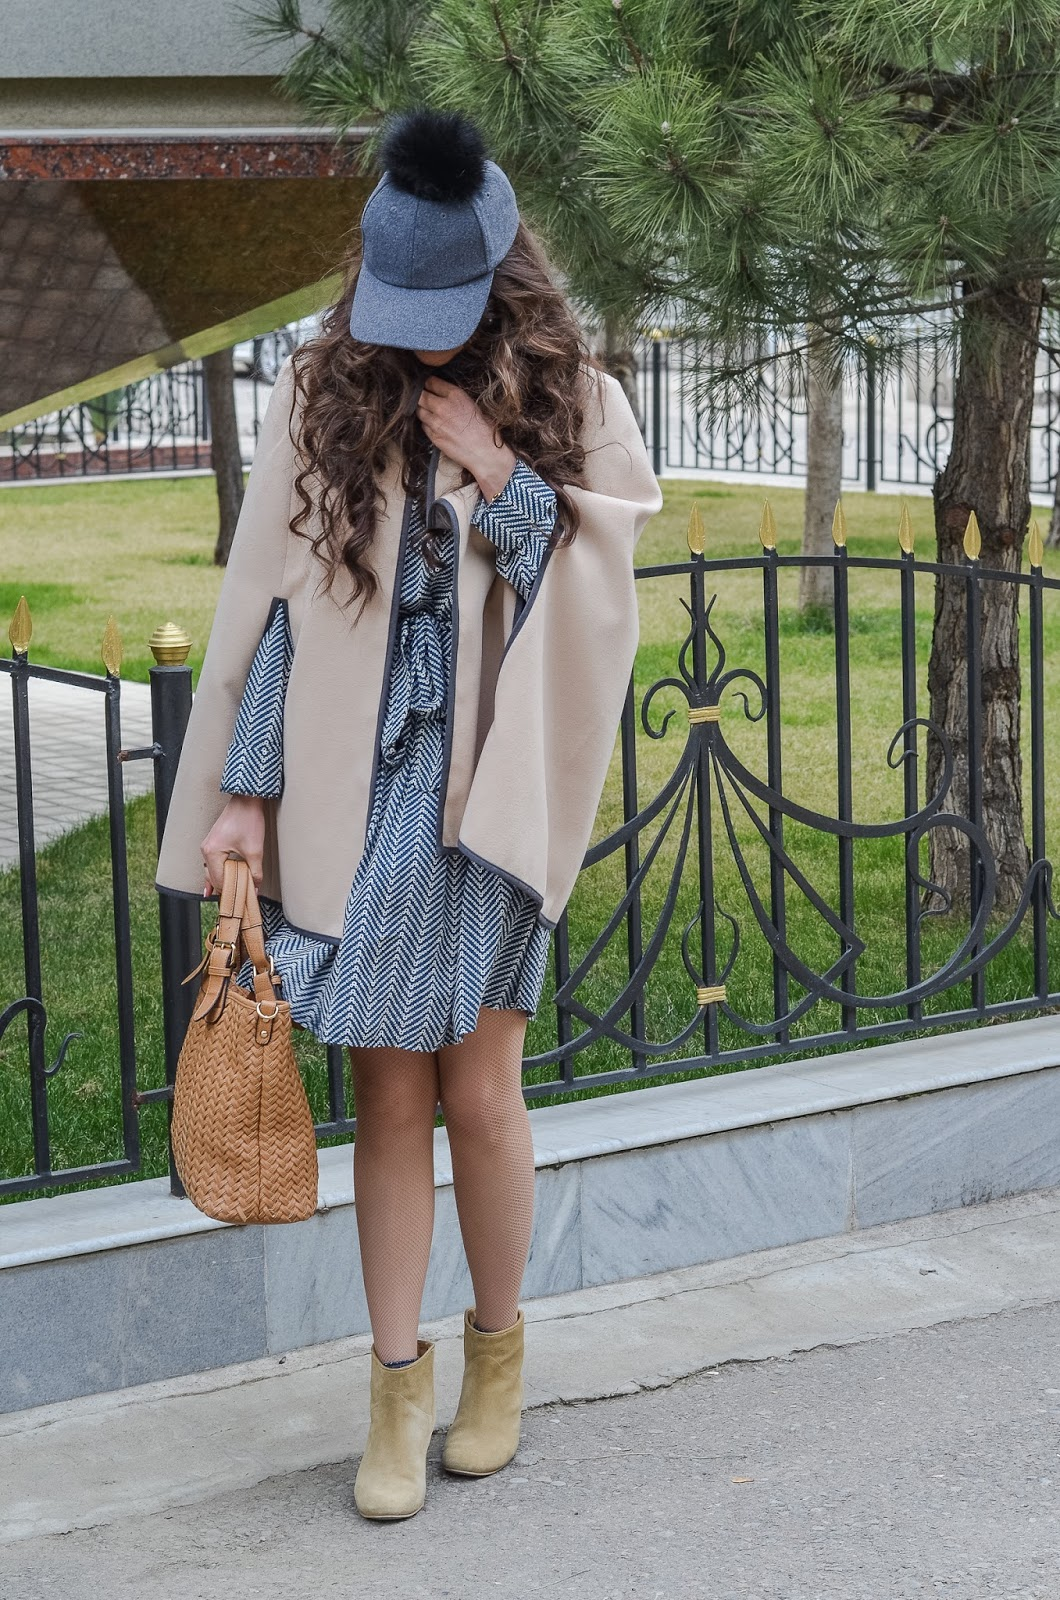 fashion blogger diyorasnotes diyora beta shift dress cape asos boots cap with pompon